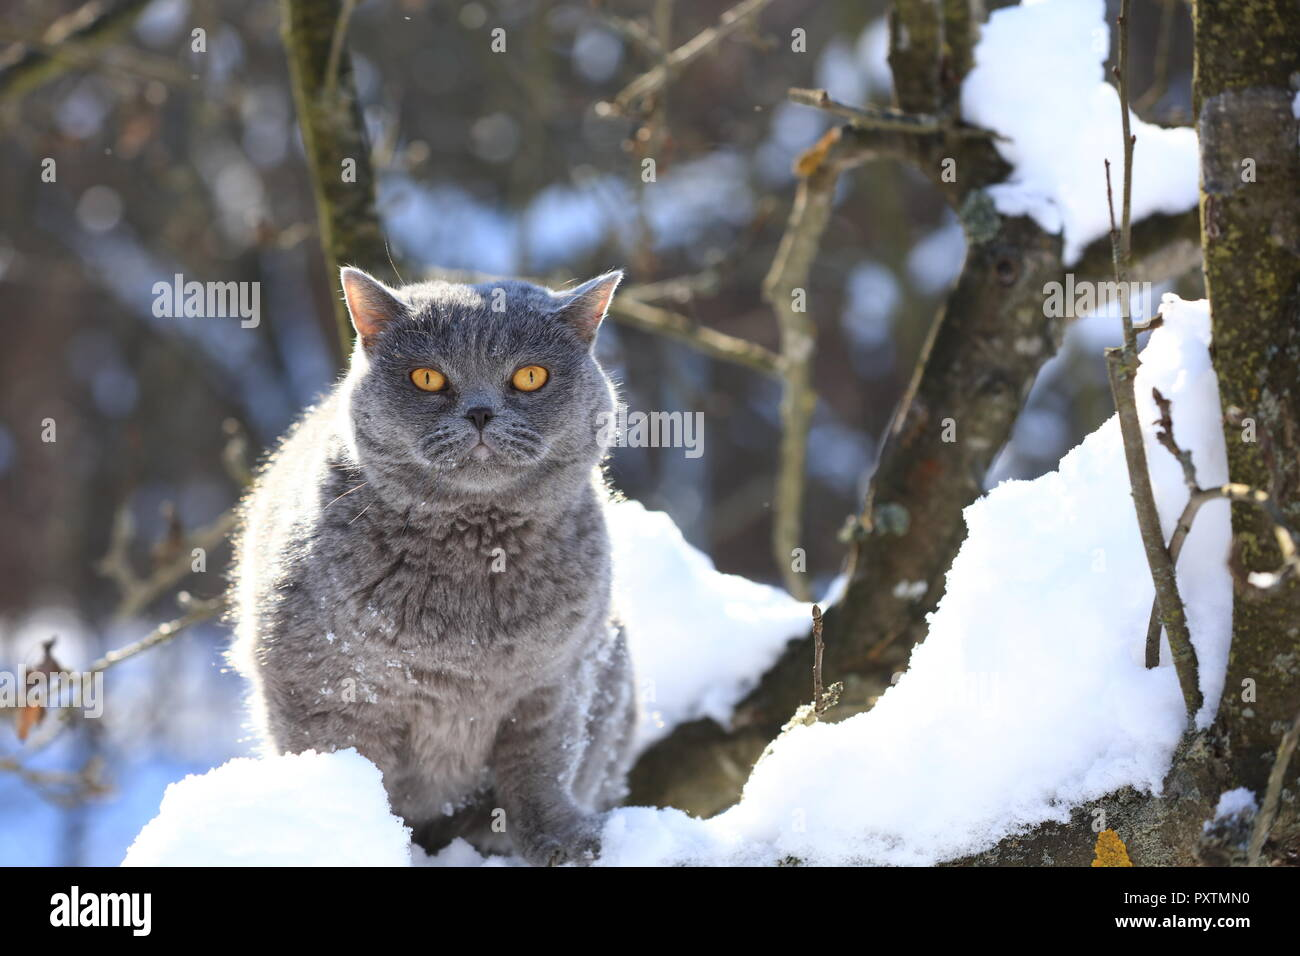 Blue British Shorthair Cat sitting on a tree in the garden in snowy winter - Stock Image